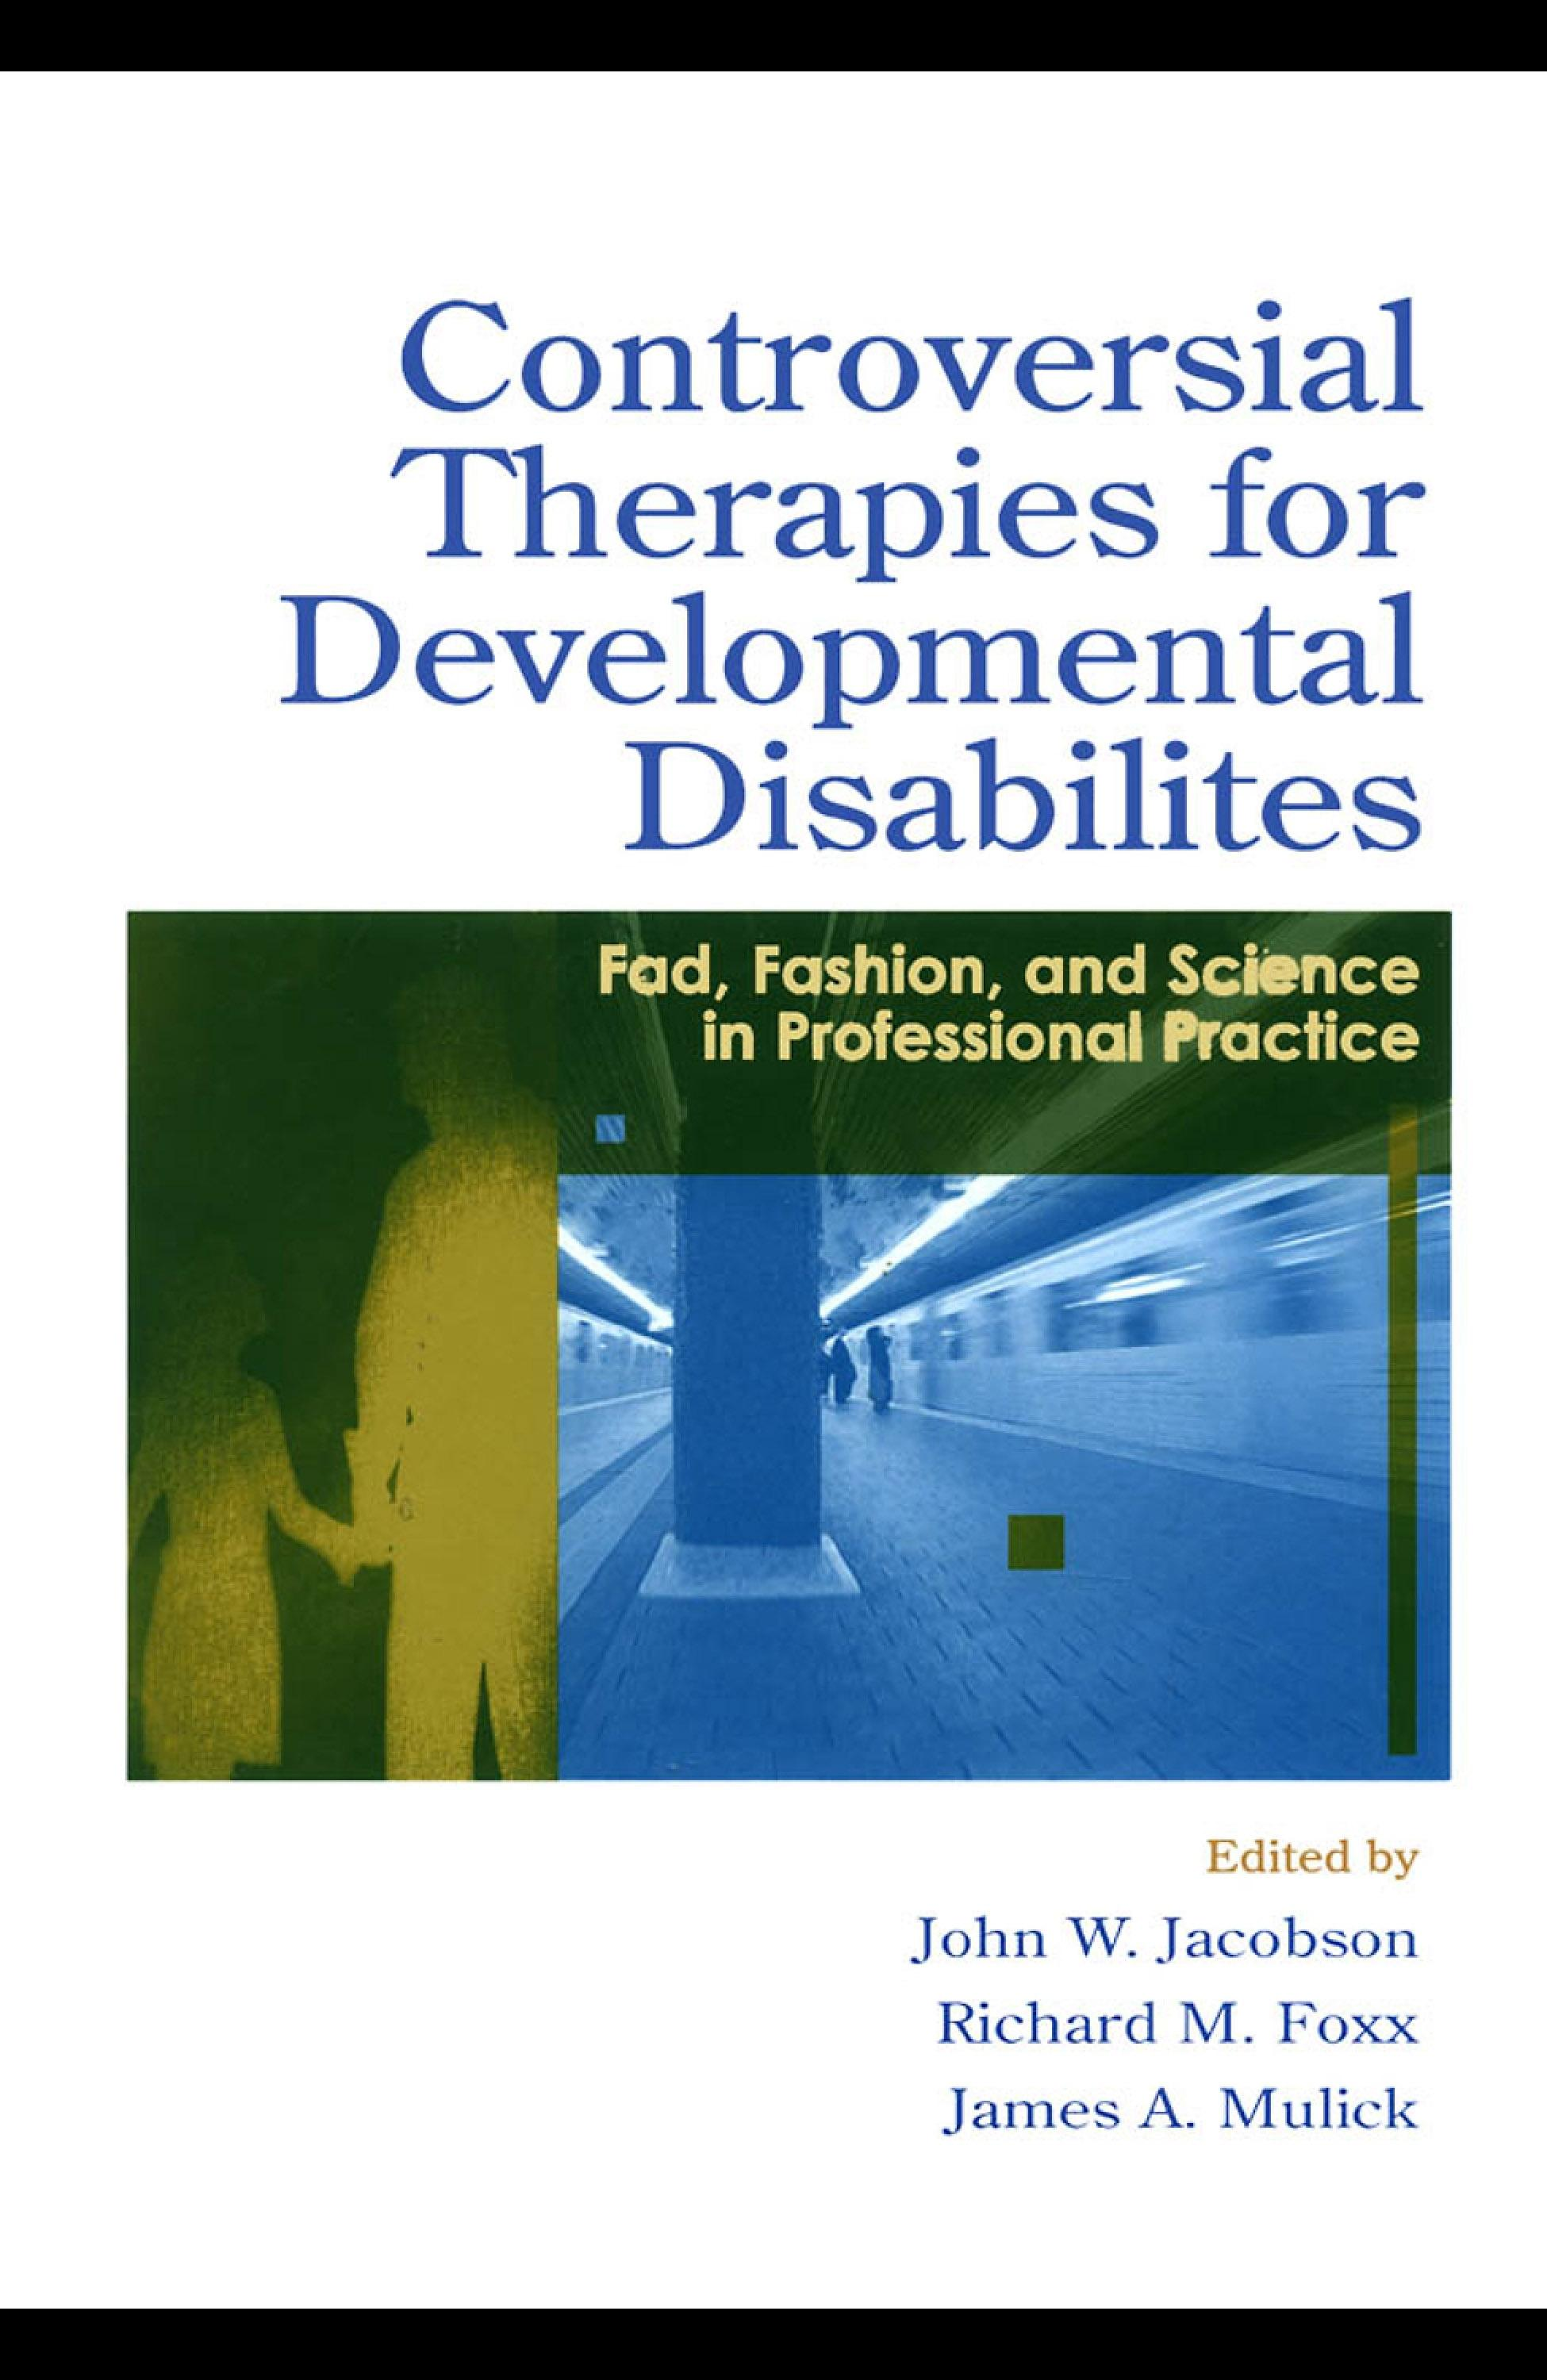 Controversial Therapies for Developmental Disabilities: Fad, Fashion, and Science in Professional Practice EB9781410611918